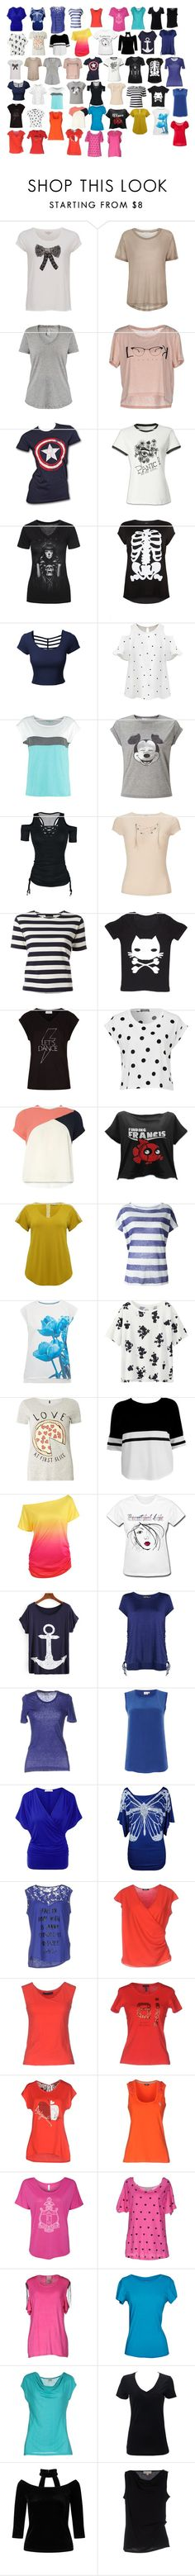 """""""T-SHIRTS 2"""" by raesong ❤ liked on Polyvore featuring French Connection, Samsøe & Samsøe, Champion, ONLY, Marvel, LE3NO, Chicnova Fashion, TWINTIP, Miss Selfridge and NLST"""